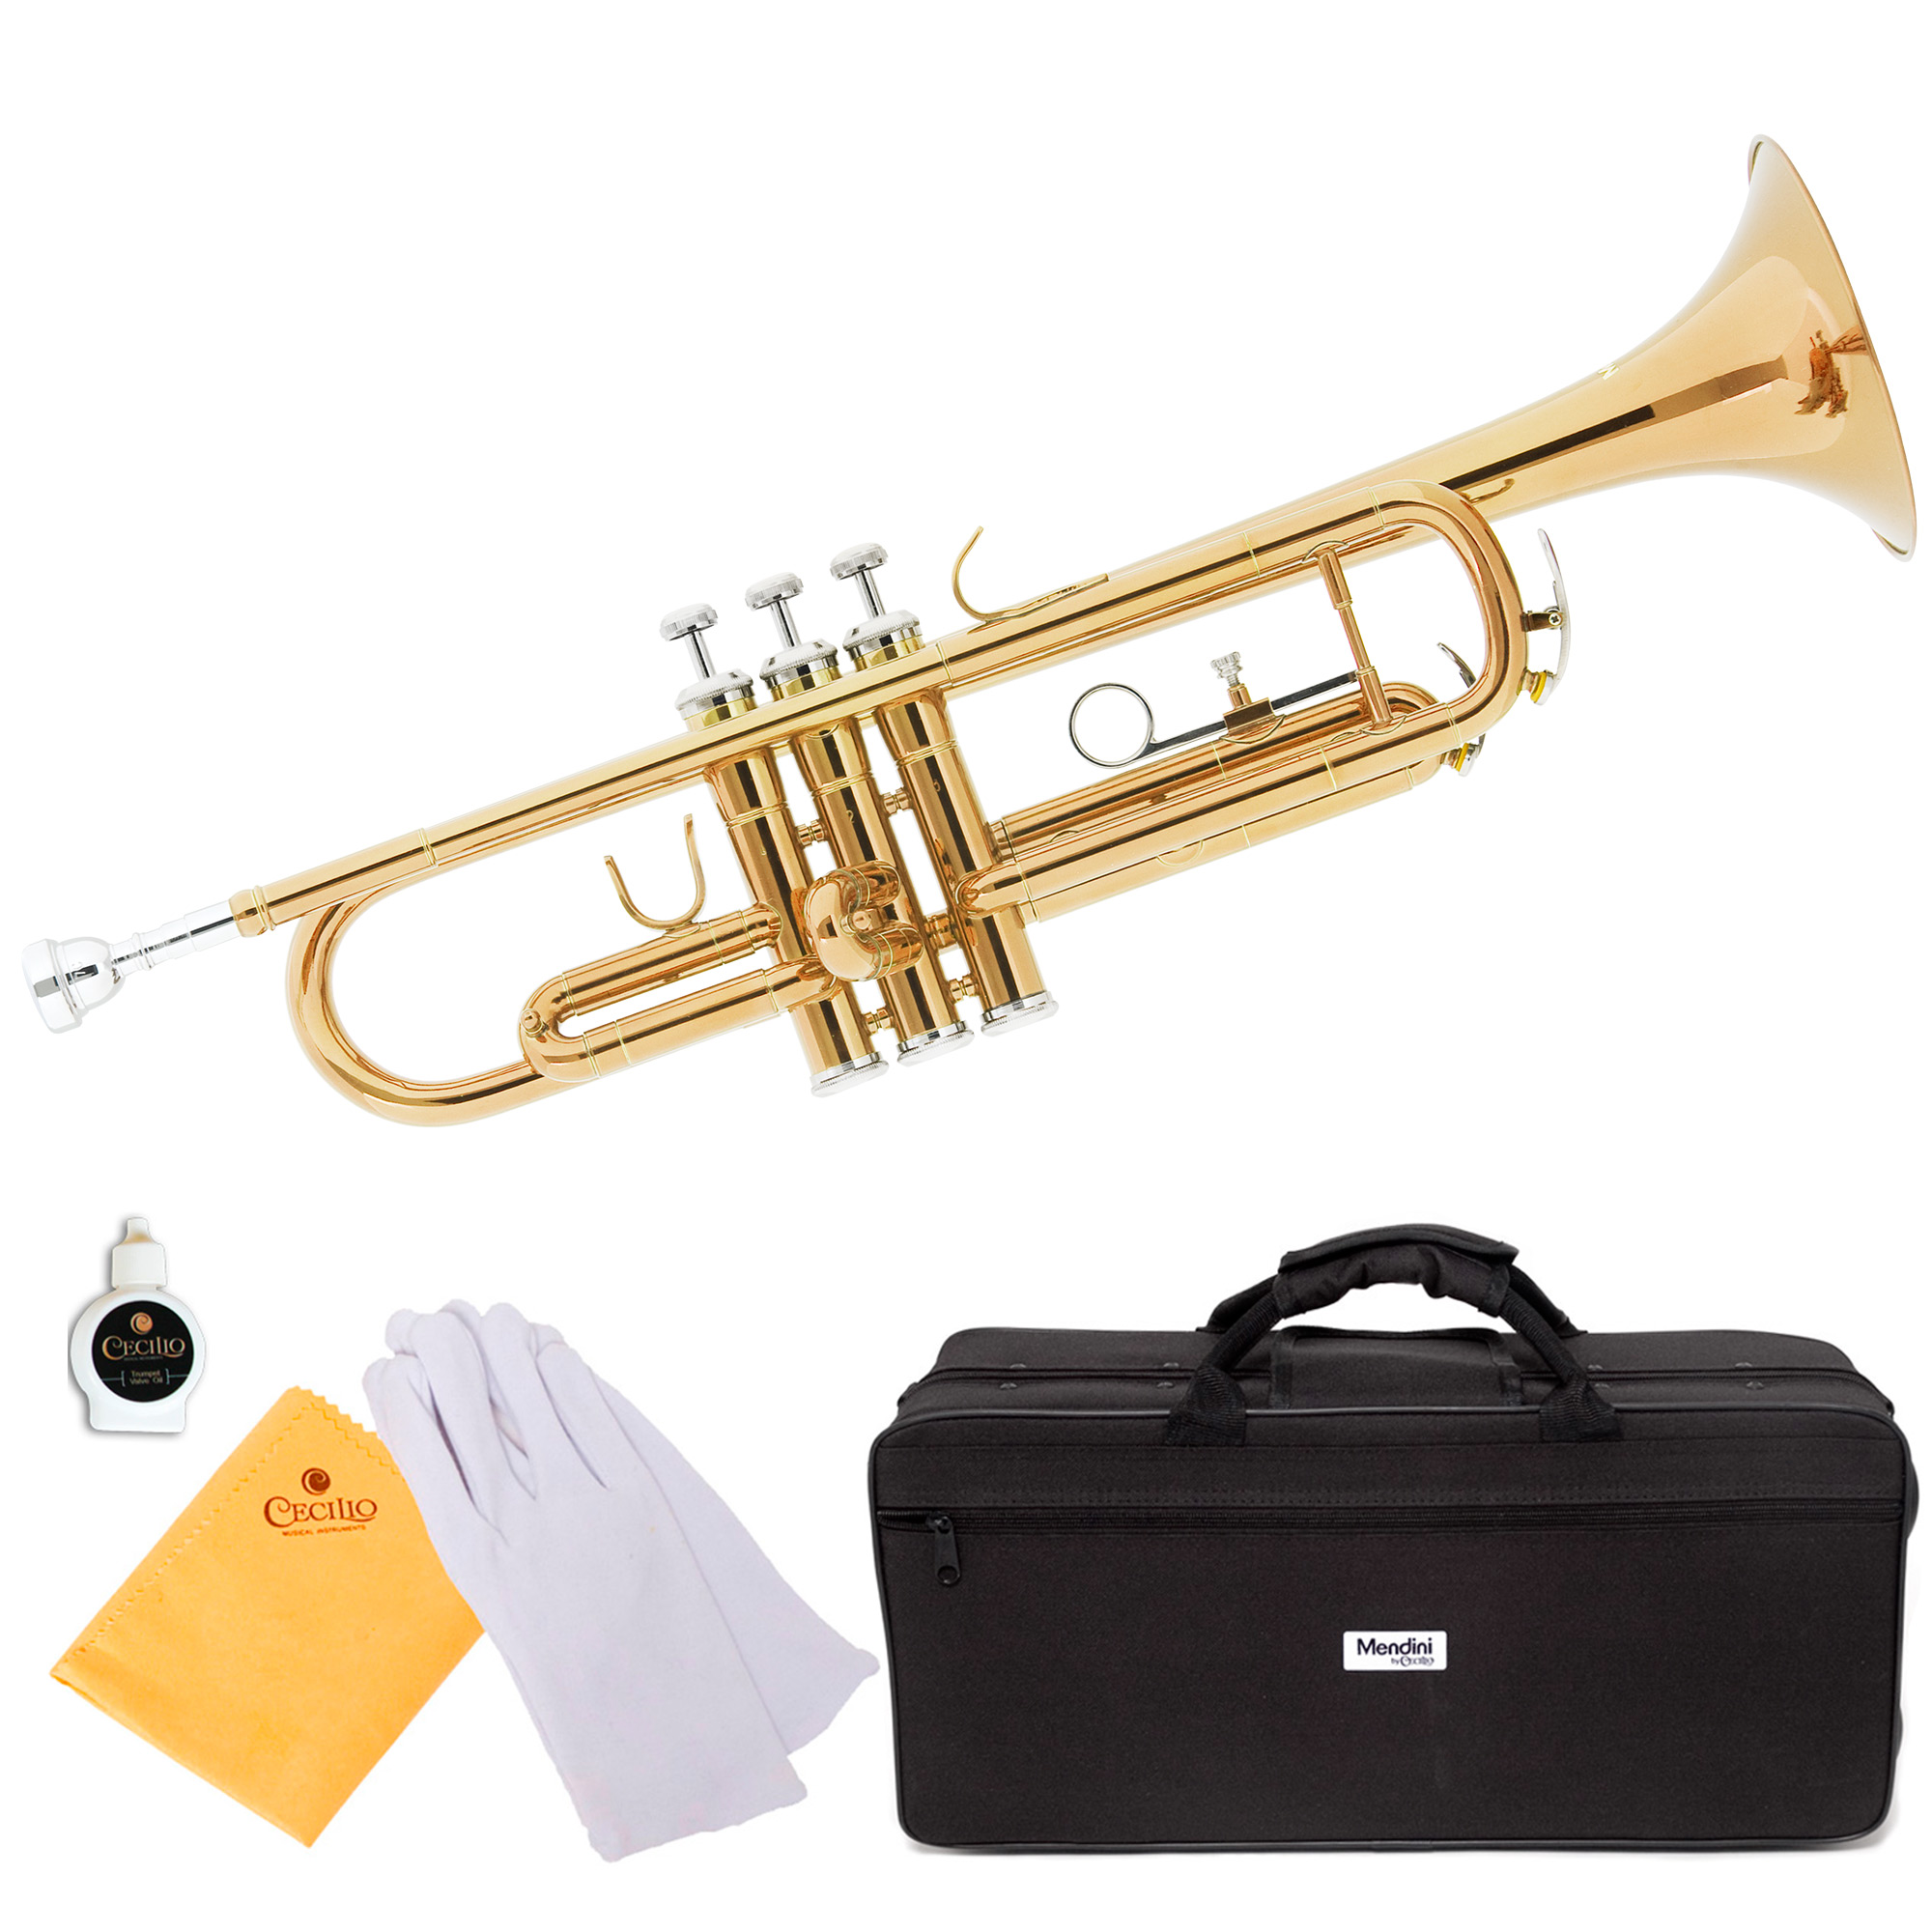 Mendini by Cecilio MTT-L Gold Lacquer Brass Bb Trumpet with Durable Deluxe Case and 1 Year... by Cecilio Musical Instruments